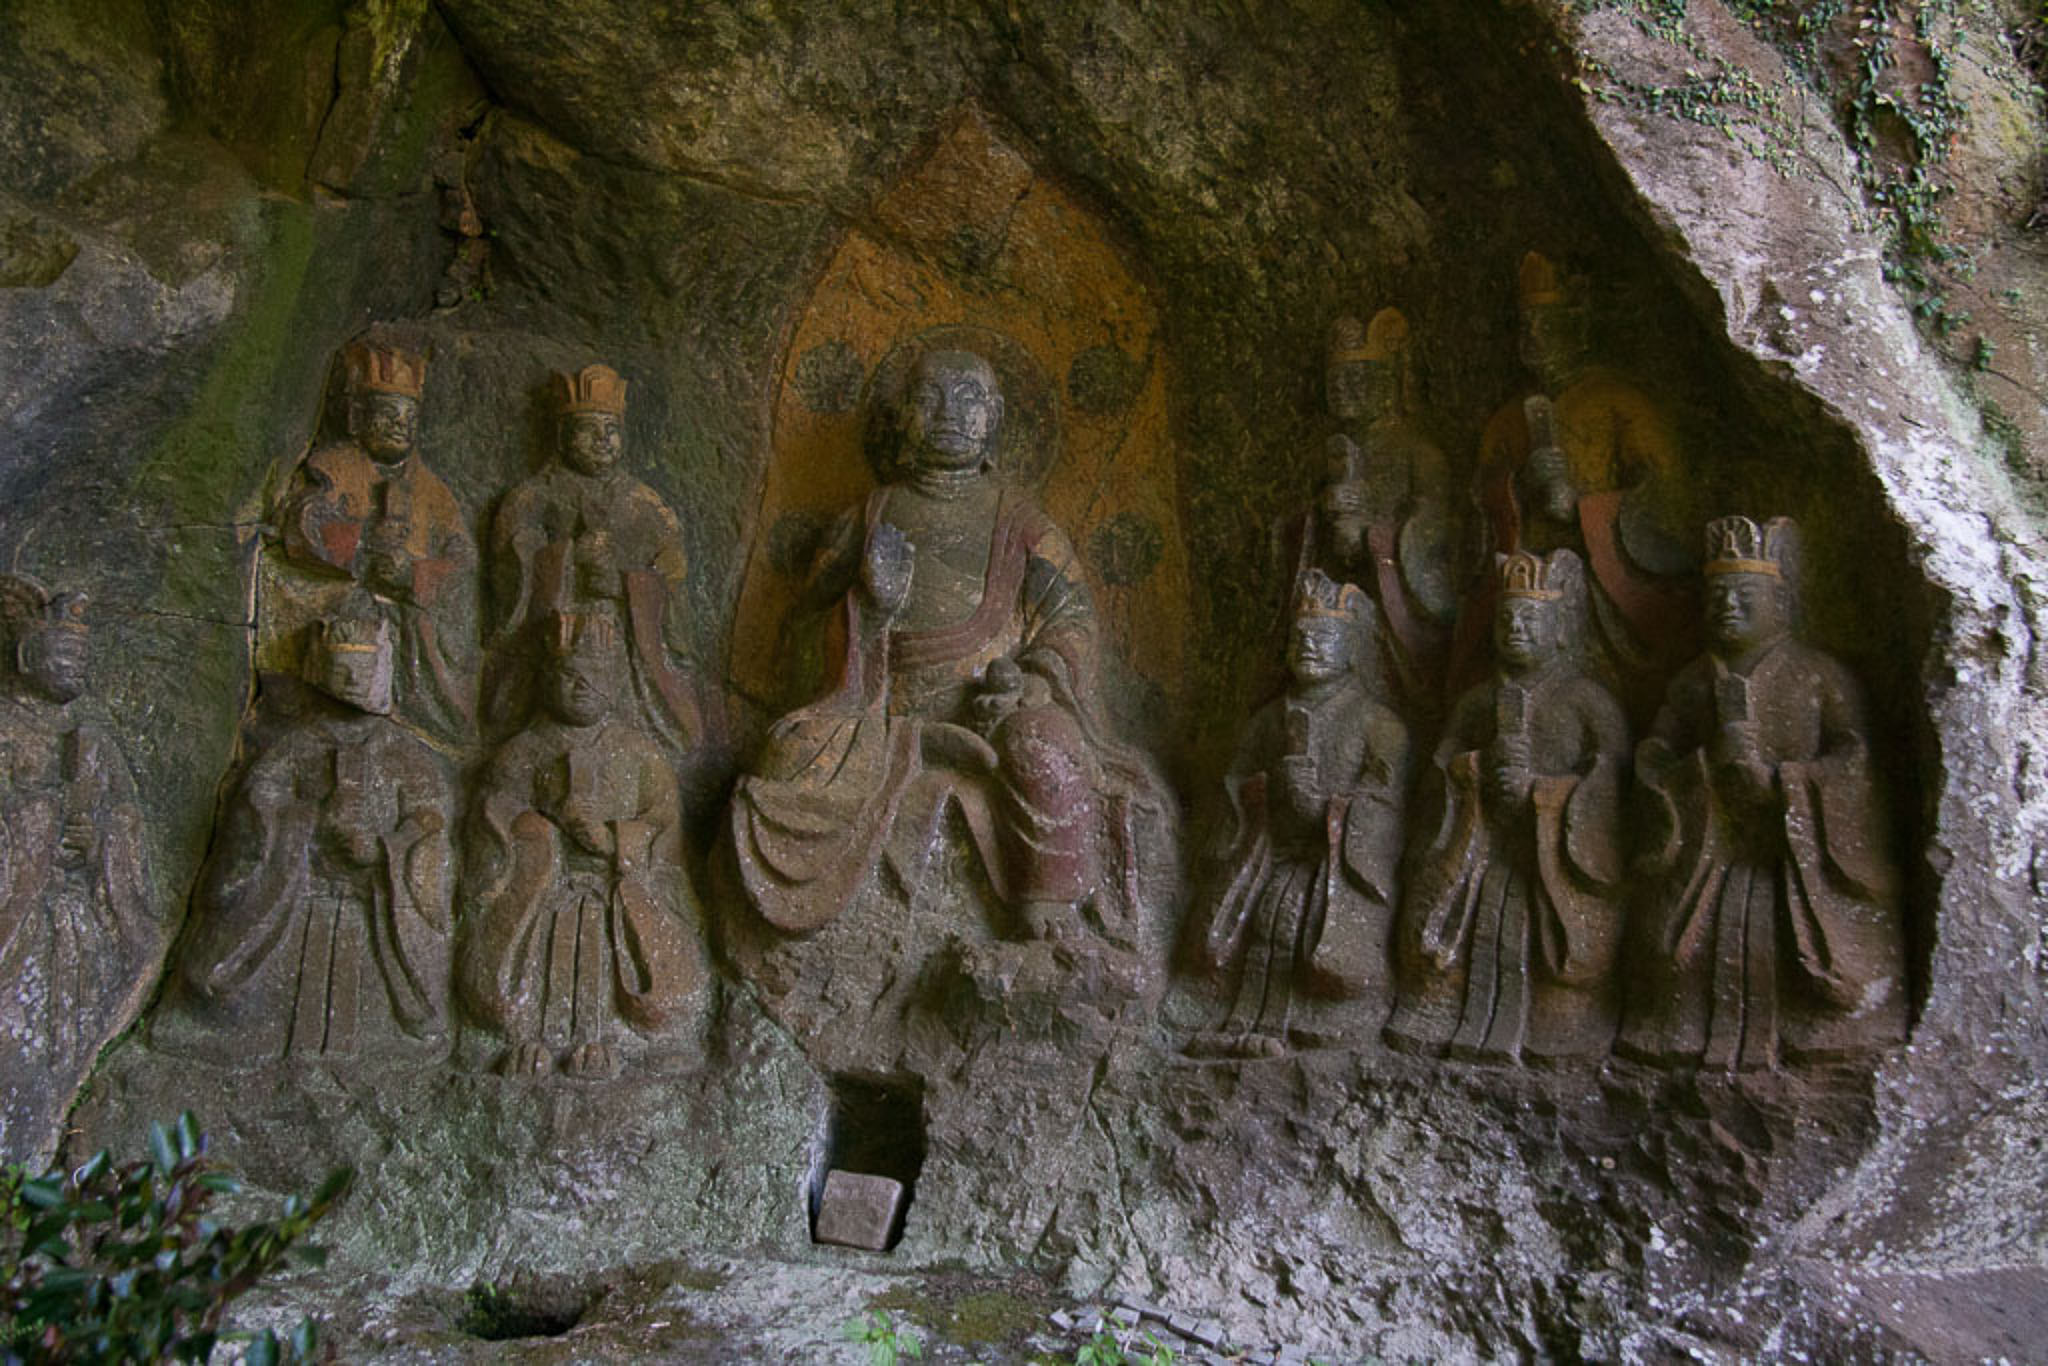 Jizo and the Ten Kings